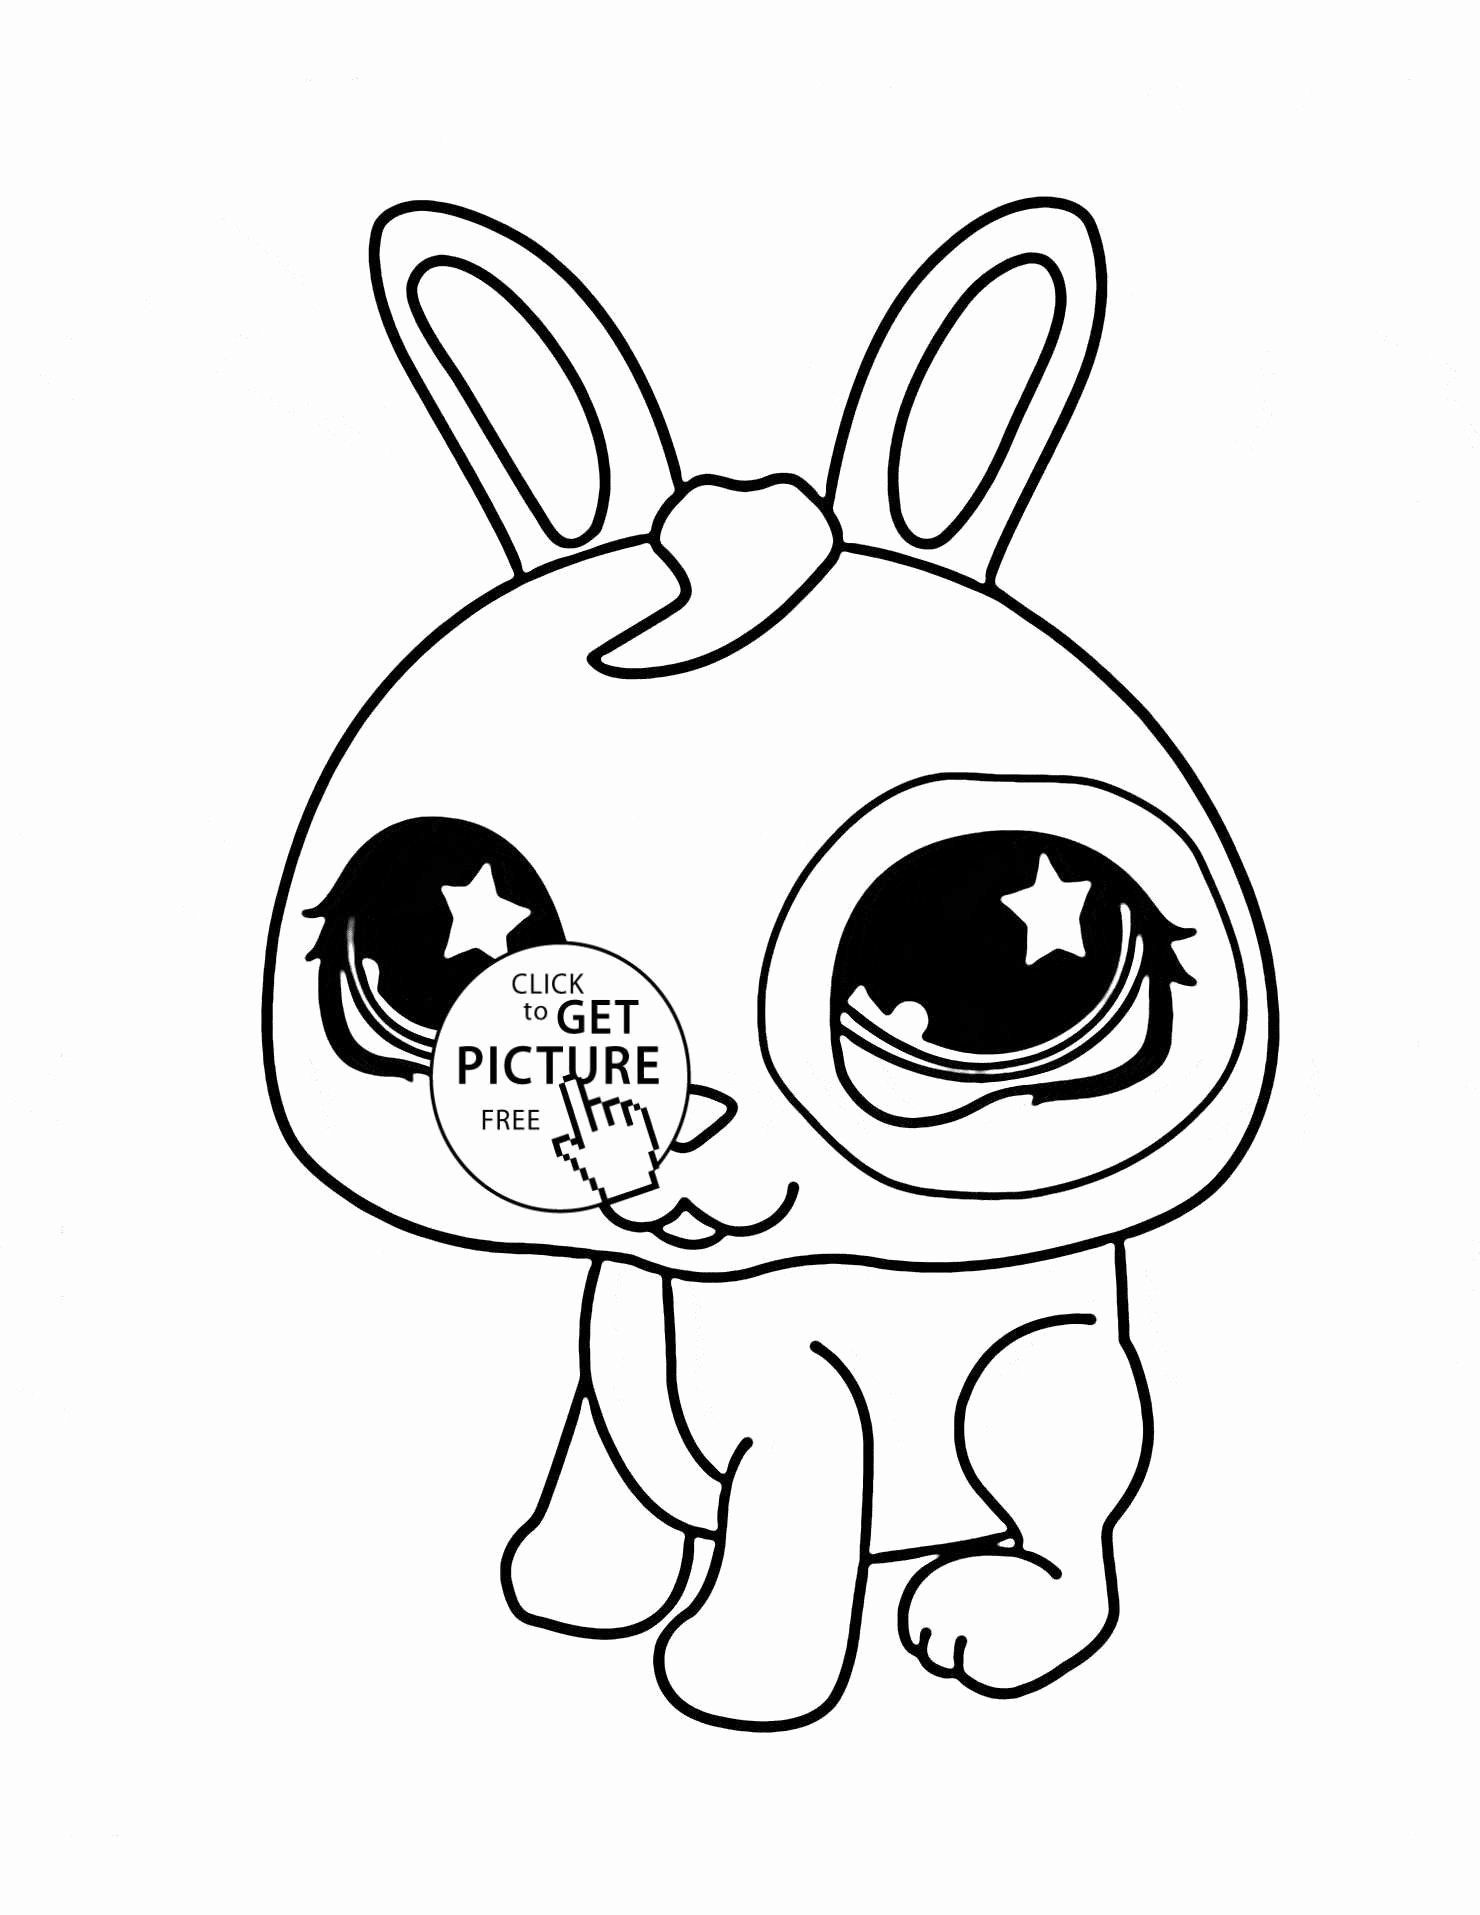 Pictures For Coloring Animals In 2020 Zoo Animal Coloring Pages Animal Coloring Pages Bunny Coloring Pages